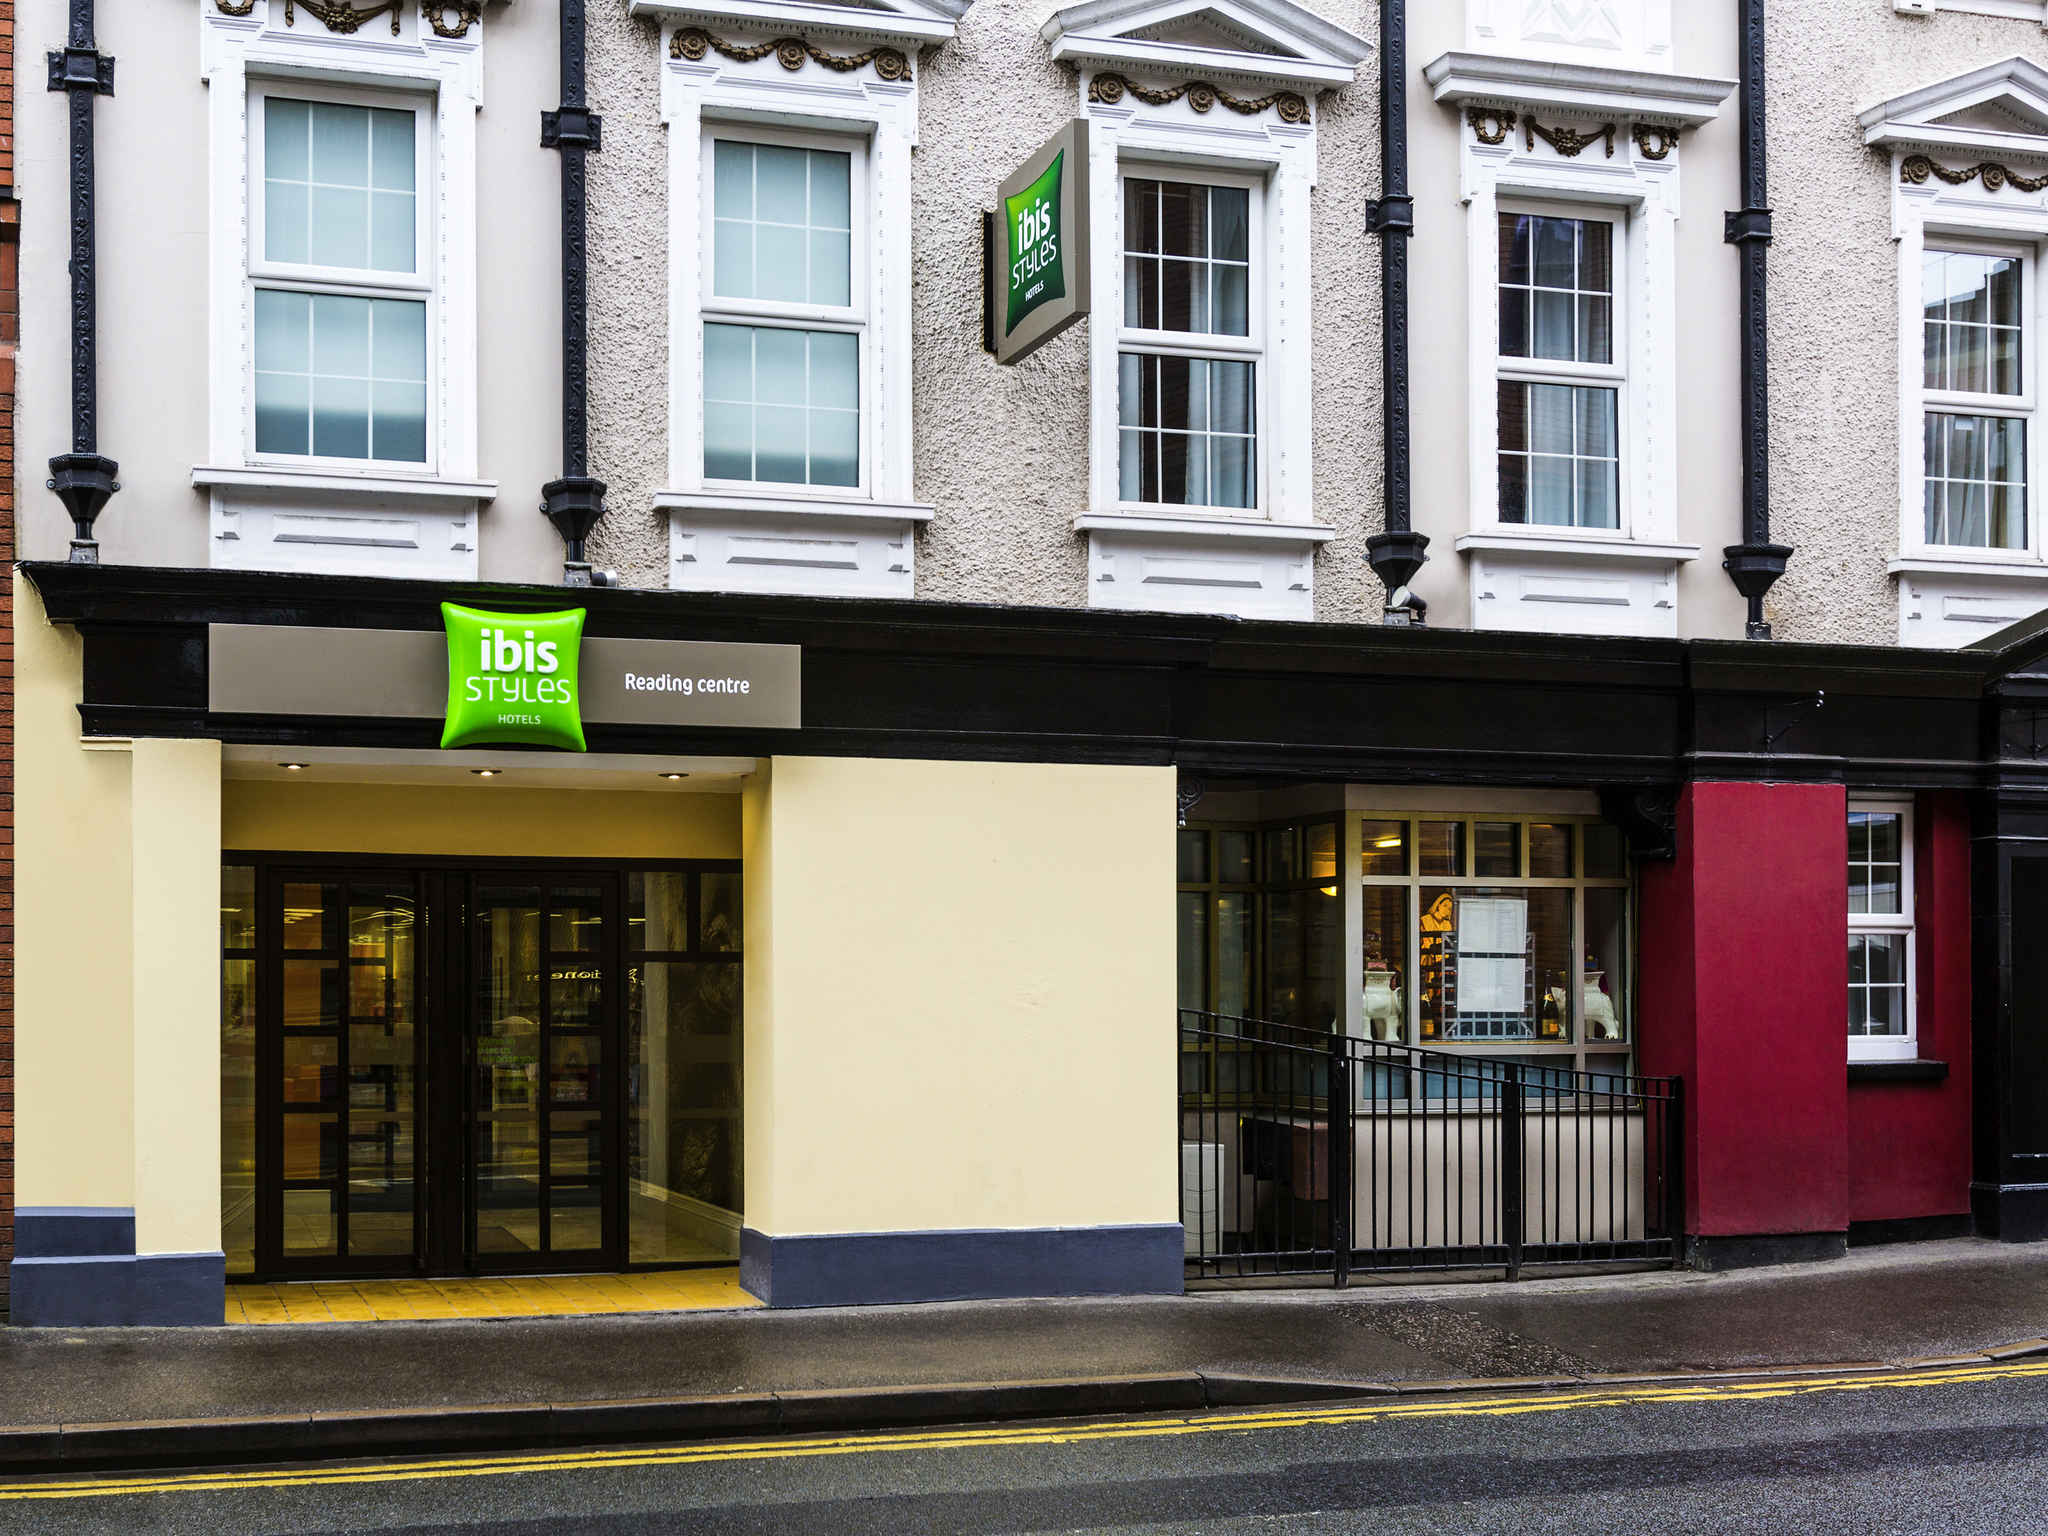 Hotel – Ibis Styles Reading Centre